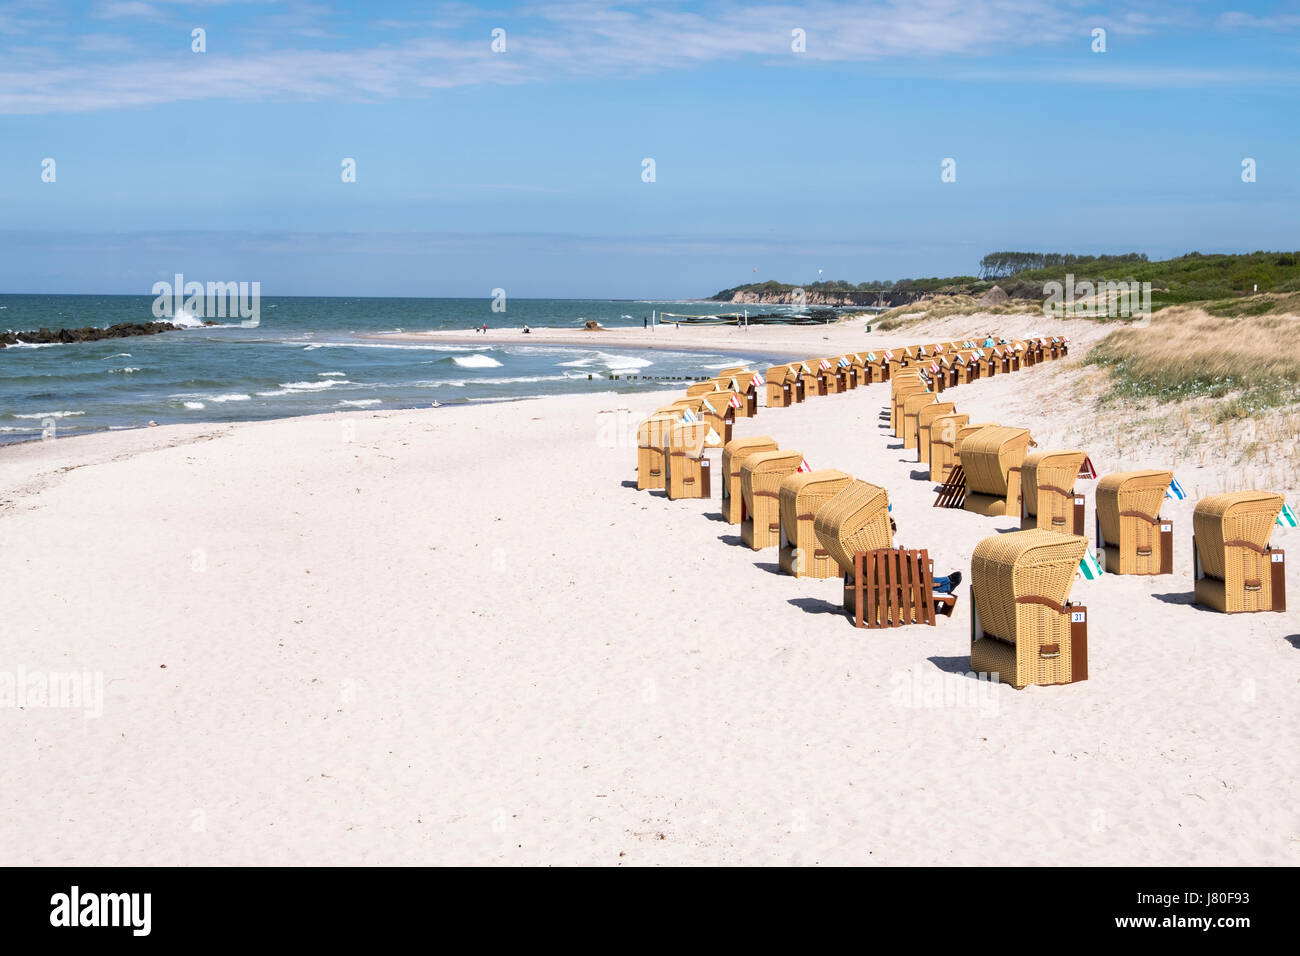 Wustrow Beach with beach chairs, Mecklenburg-Vorpommern, Germany - Stock Image